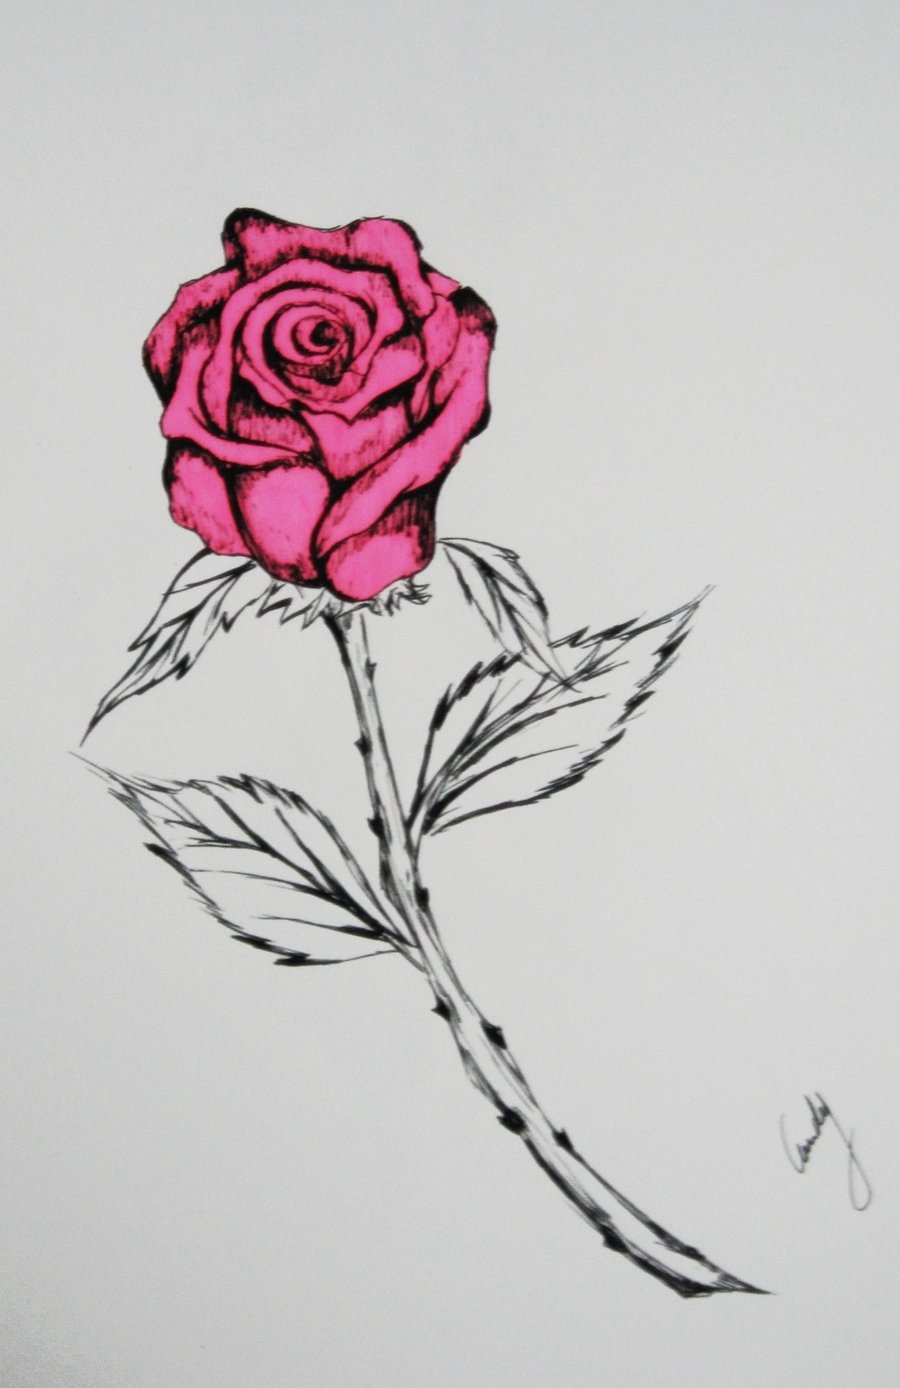 Drawings Of Roses - Cliparts.co